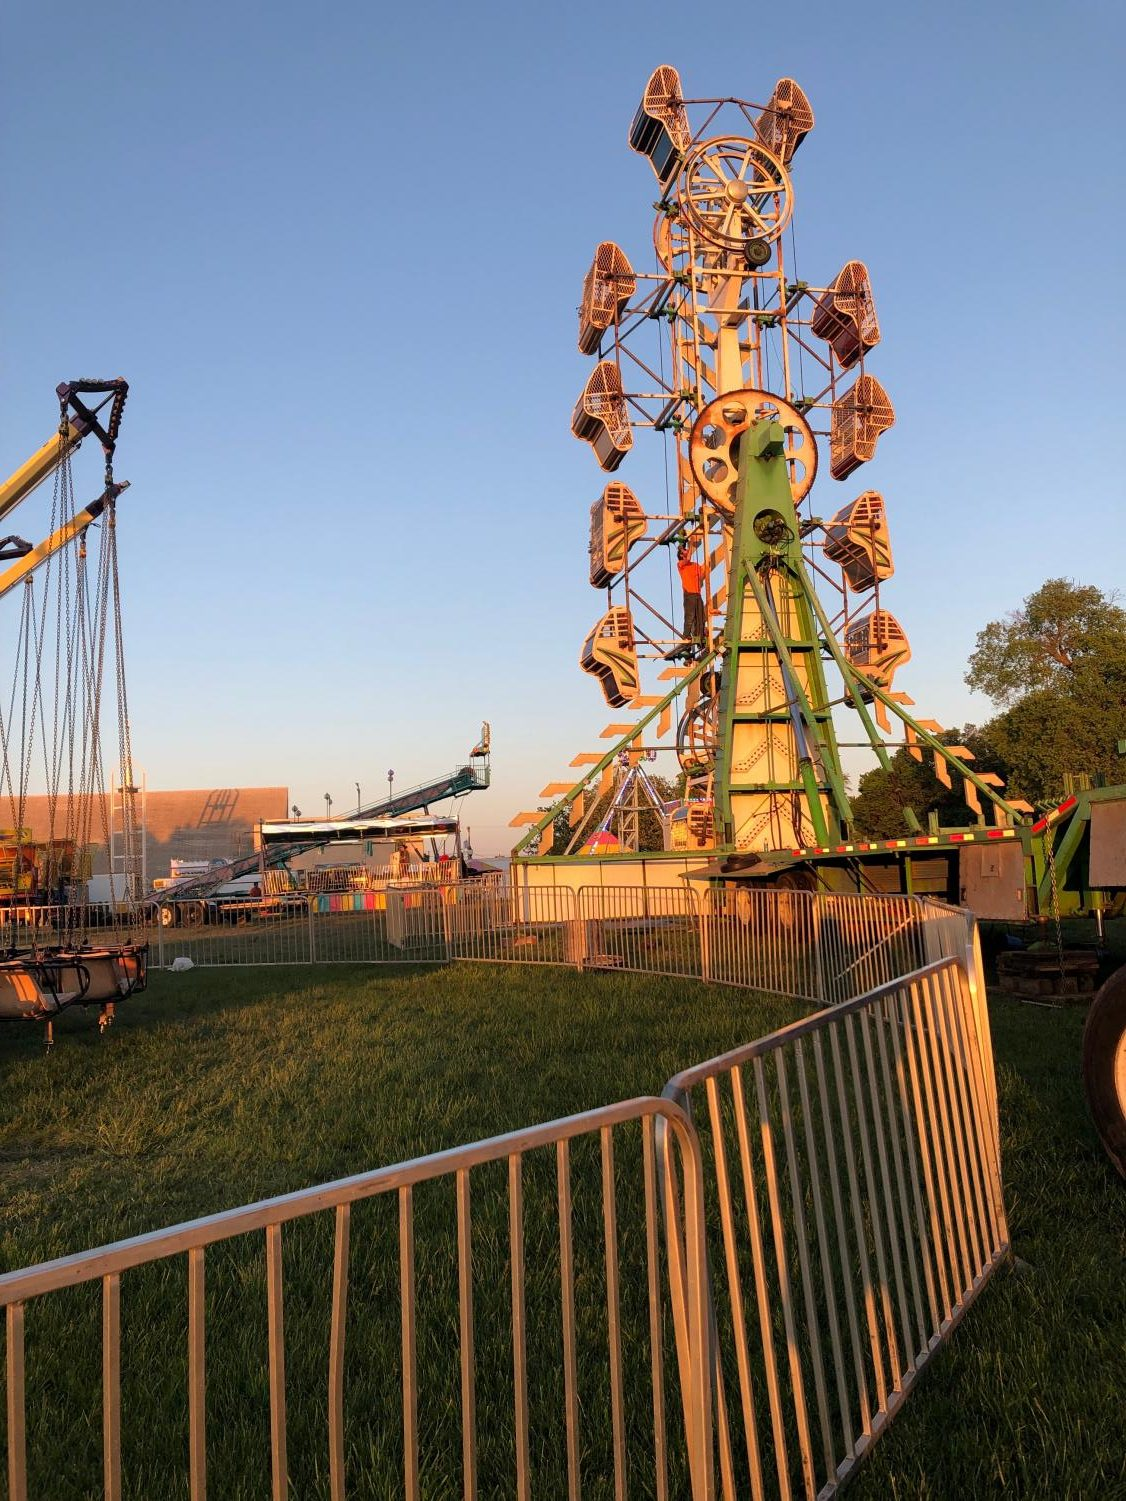 The McPherson Carnivals notorious 'Zipper' doesn't appear very safe for riders.